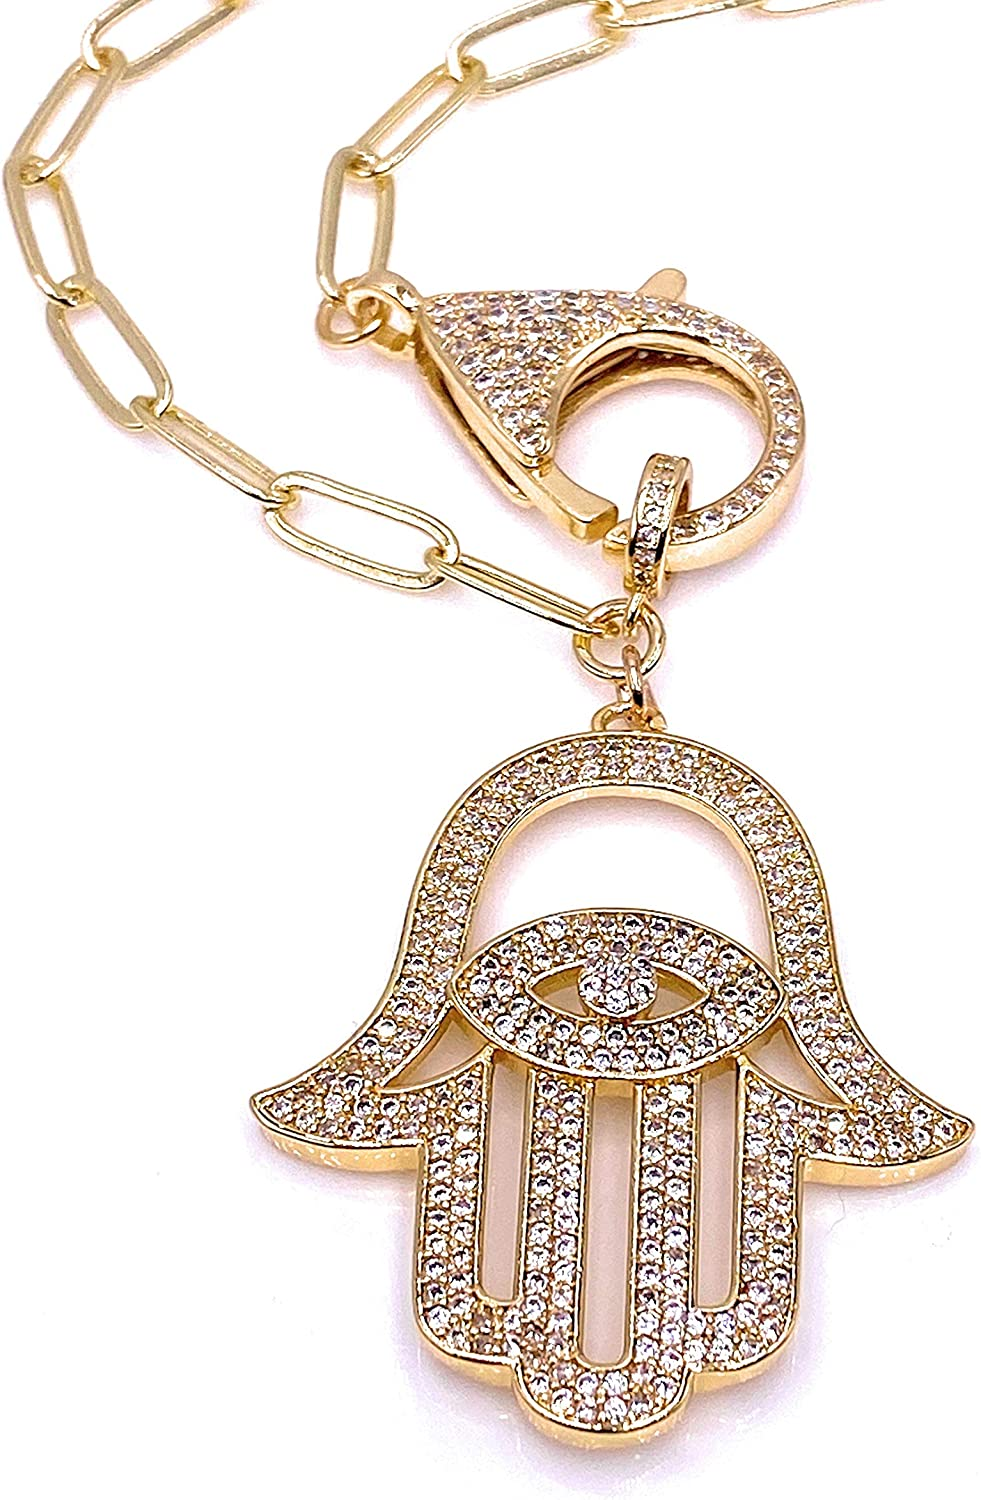 Stunning Gold Hamsa Hand Necklace for Women 18K Gold Plated Chain Protection Jewelry